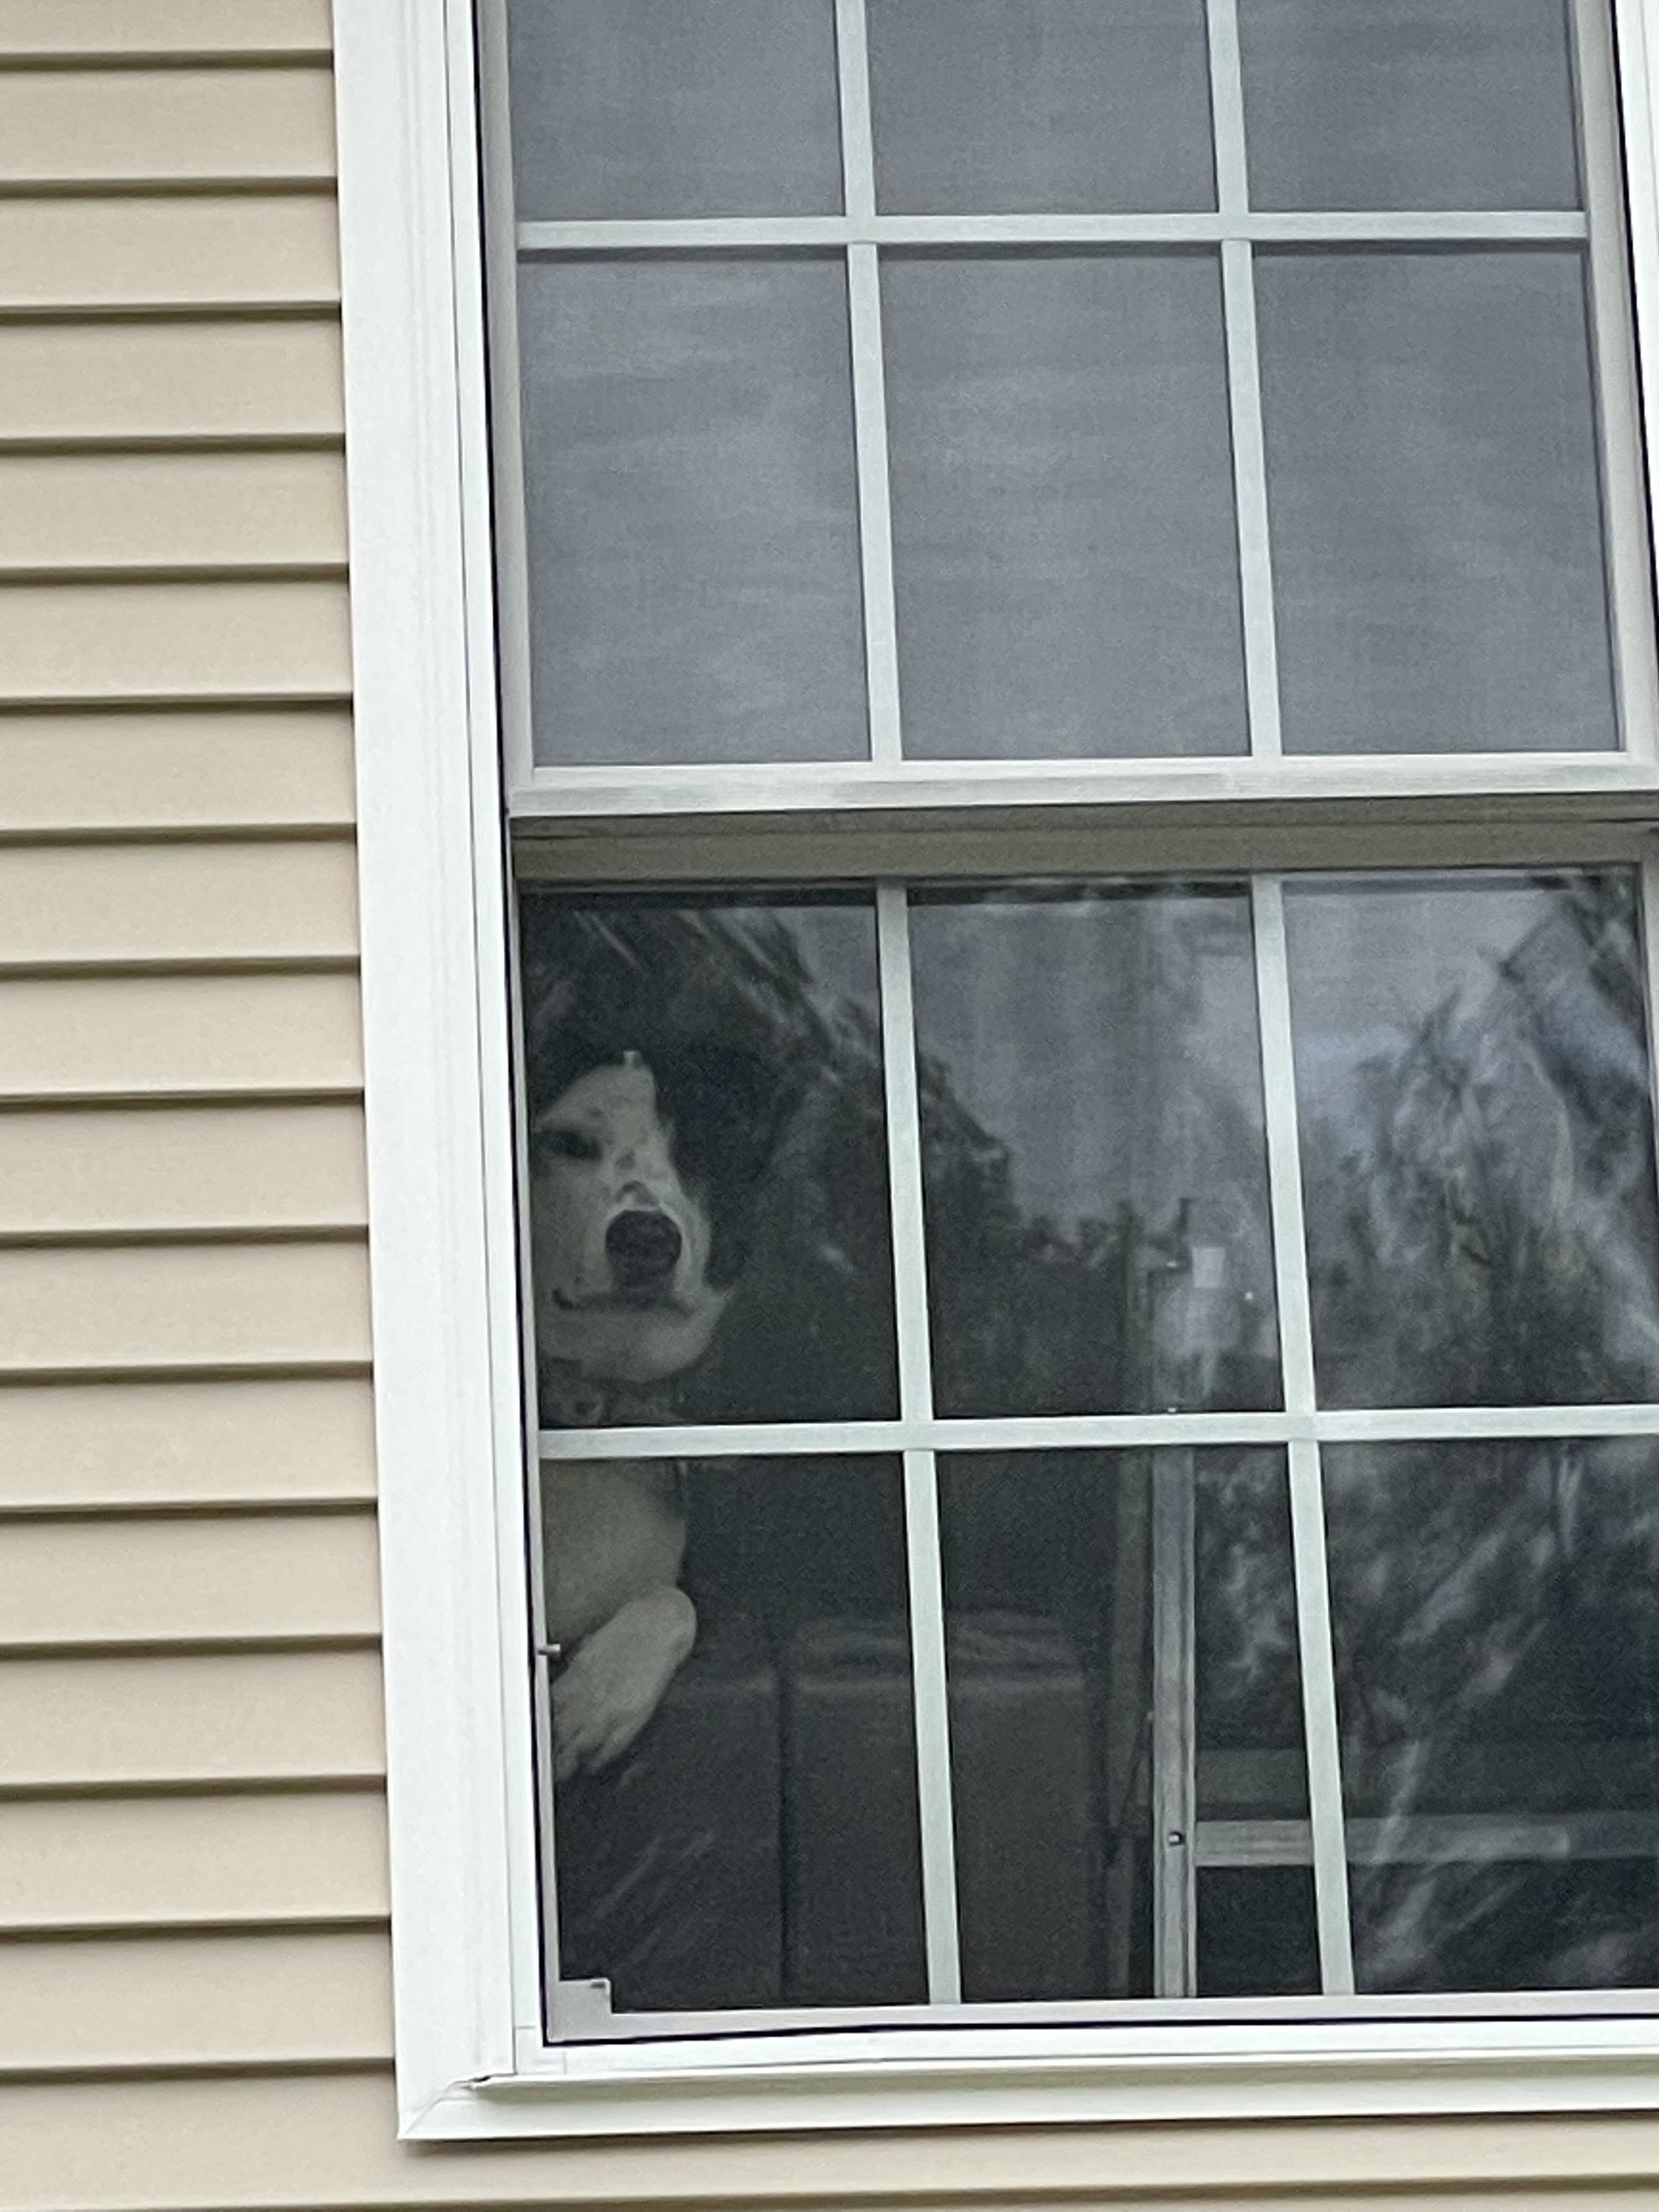 Zoomed in on window to see a dog leaning over a sofa to watch the action outside